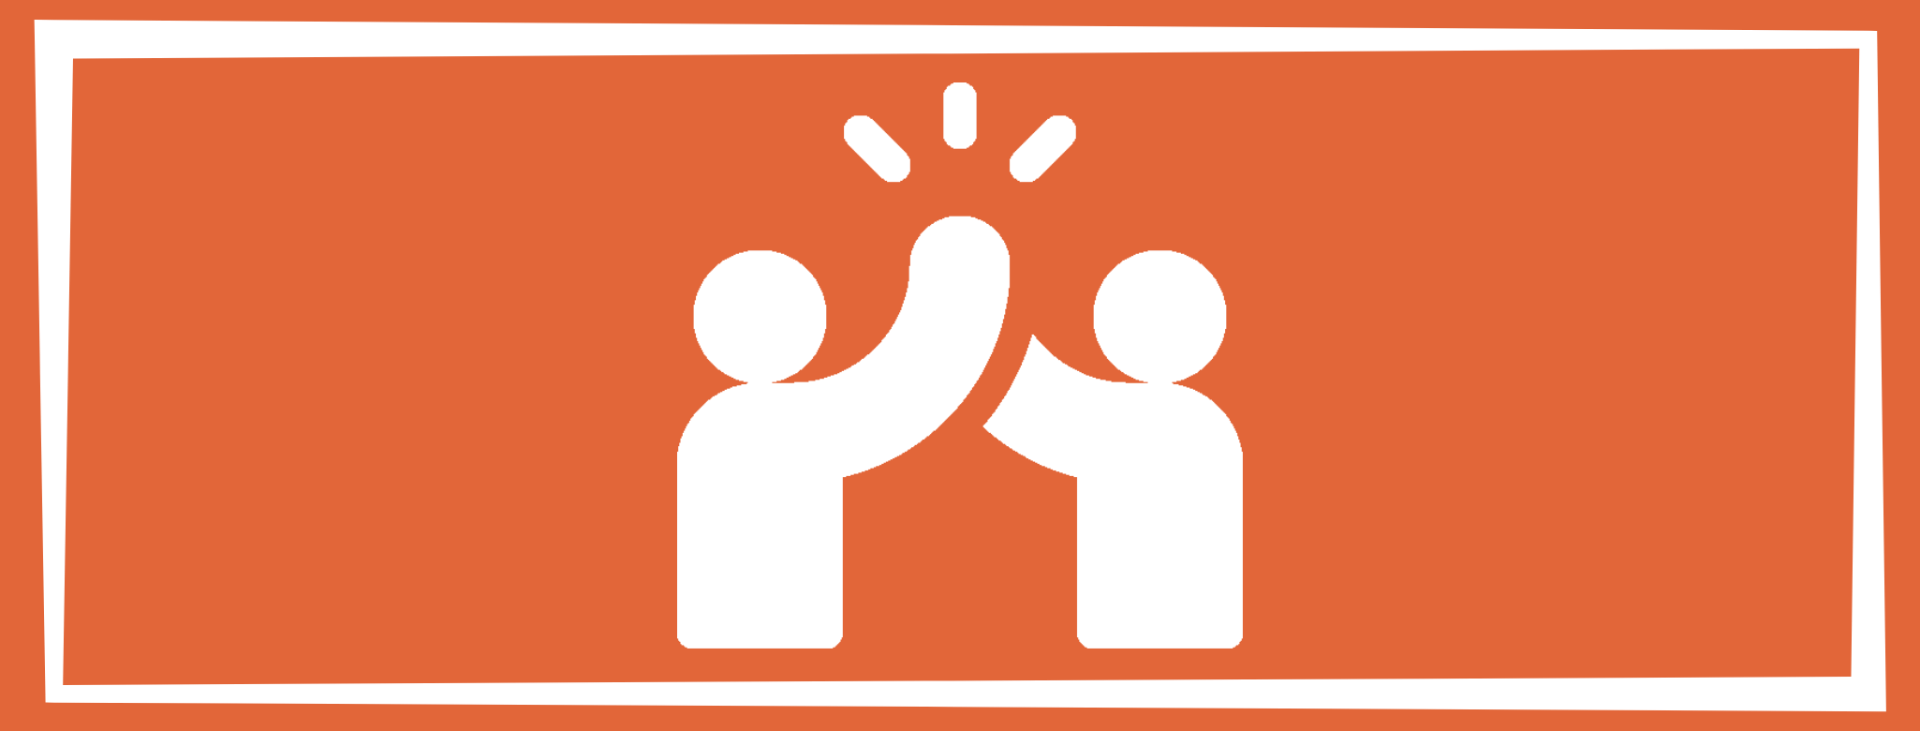 social wellness solid square with people high-fiving